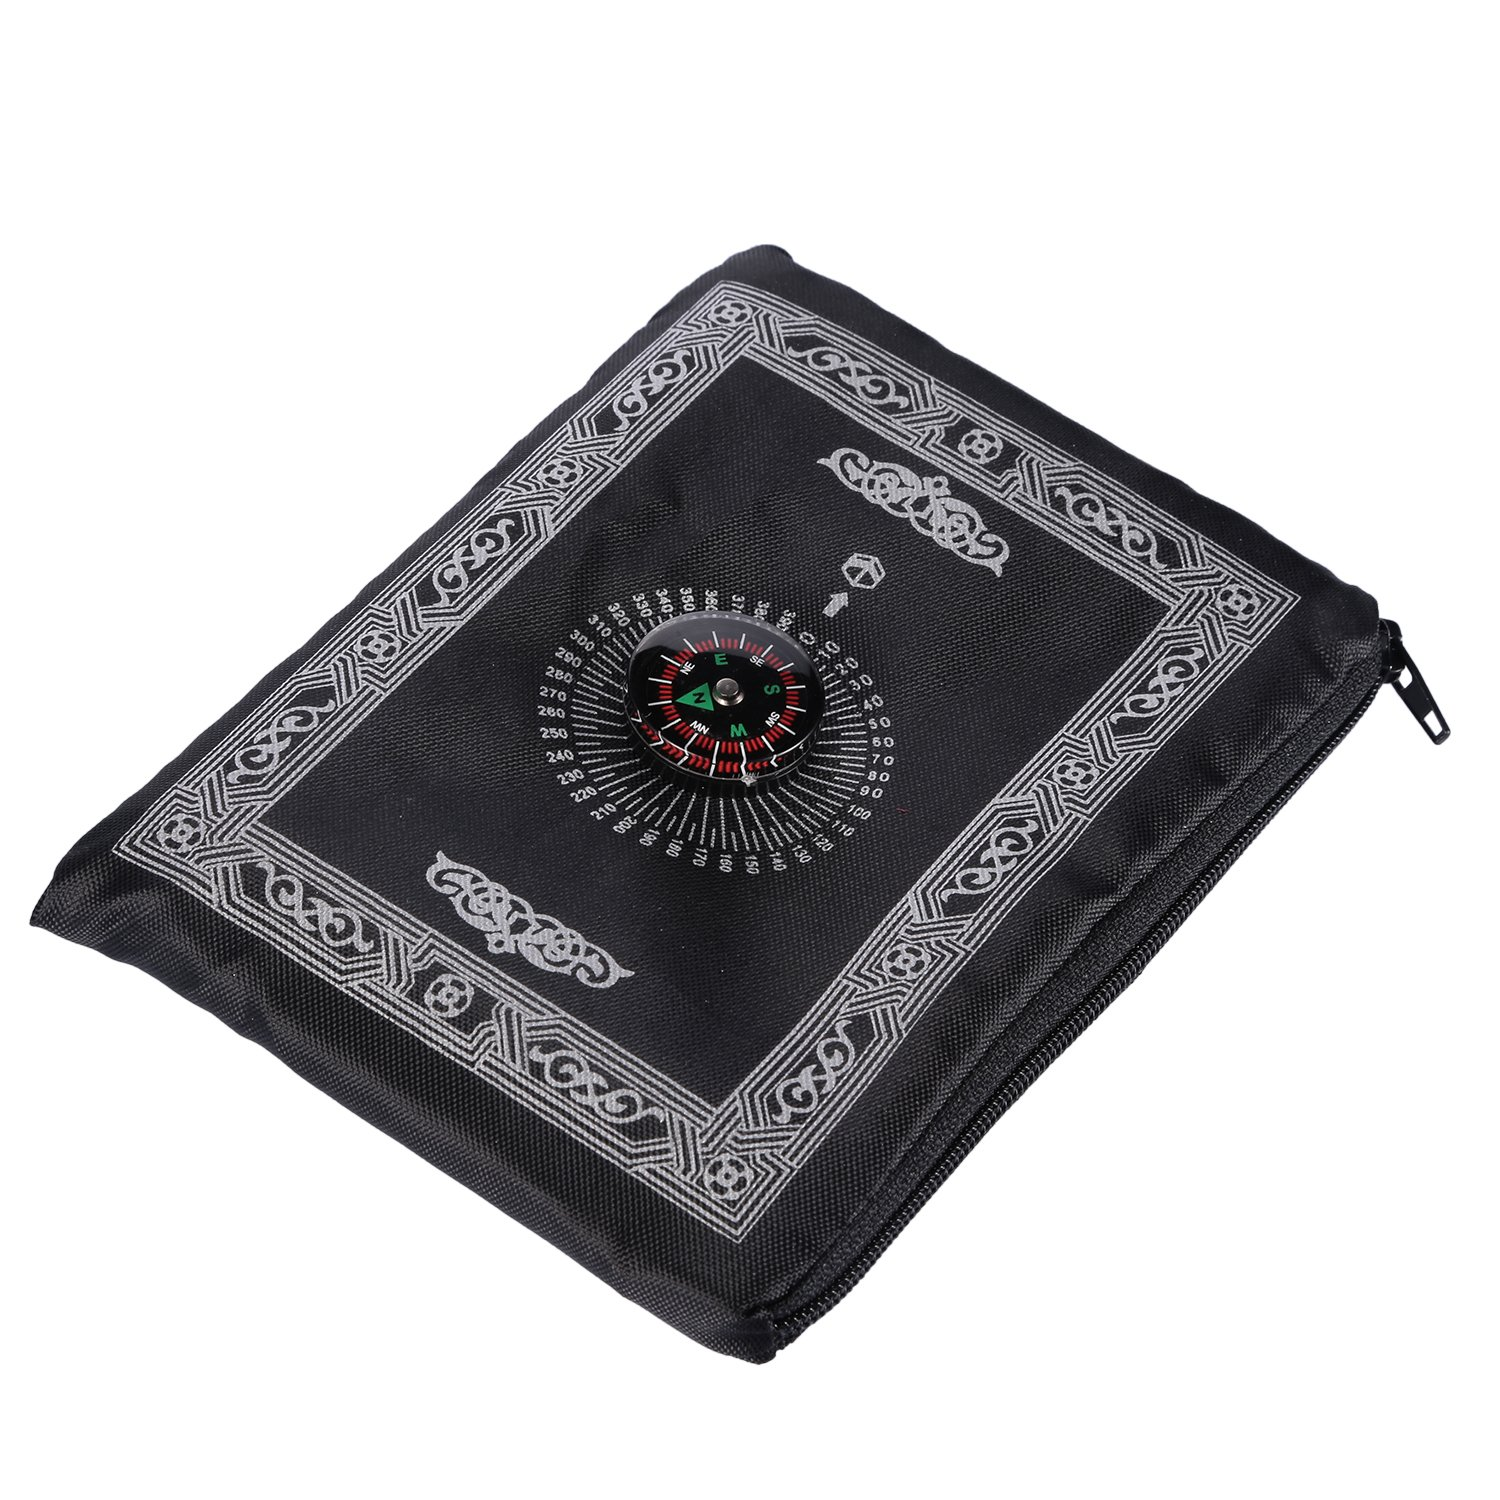 Hitopin Portable Black Color Muslim Prayer Rug with Compass Pocket Size Prayer Mat ompass Qibla finder with Booklet Waterproof Material HP-PMBk COMIN18JU042246